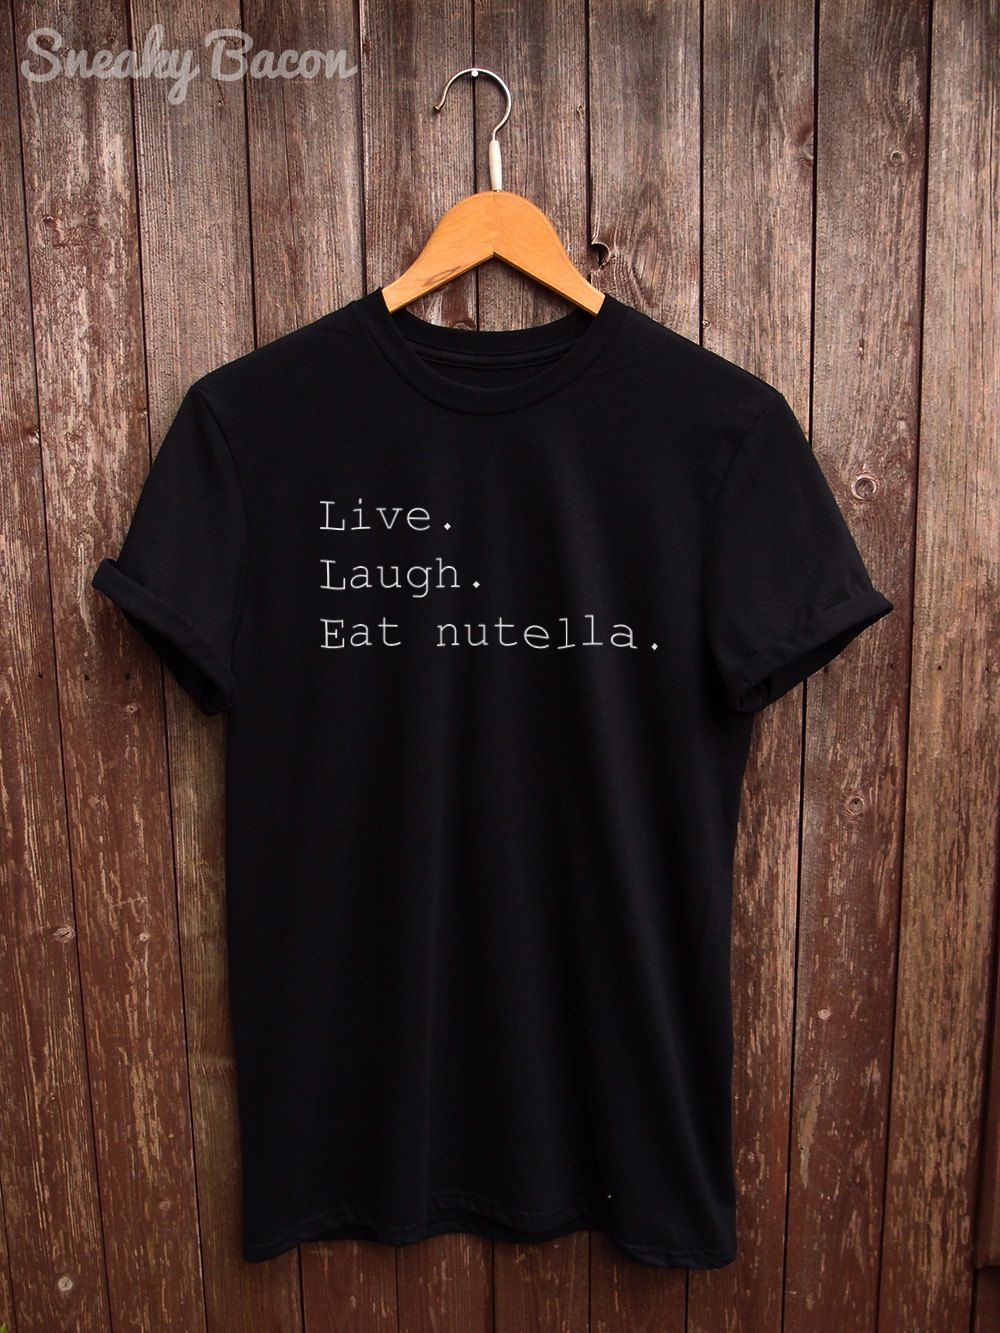 Ital tees bass culture and sound system clothing - Live Laugh Eat Nutella T Shirt Funny Gifts Food Shirts Nutella Prints